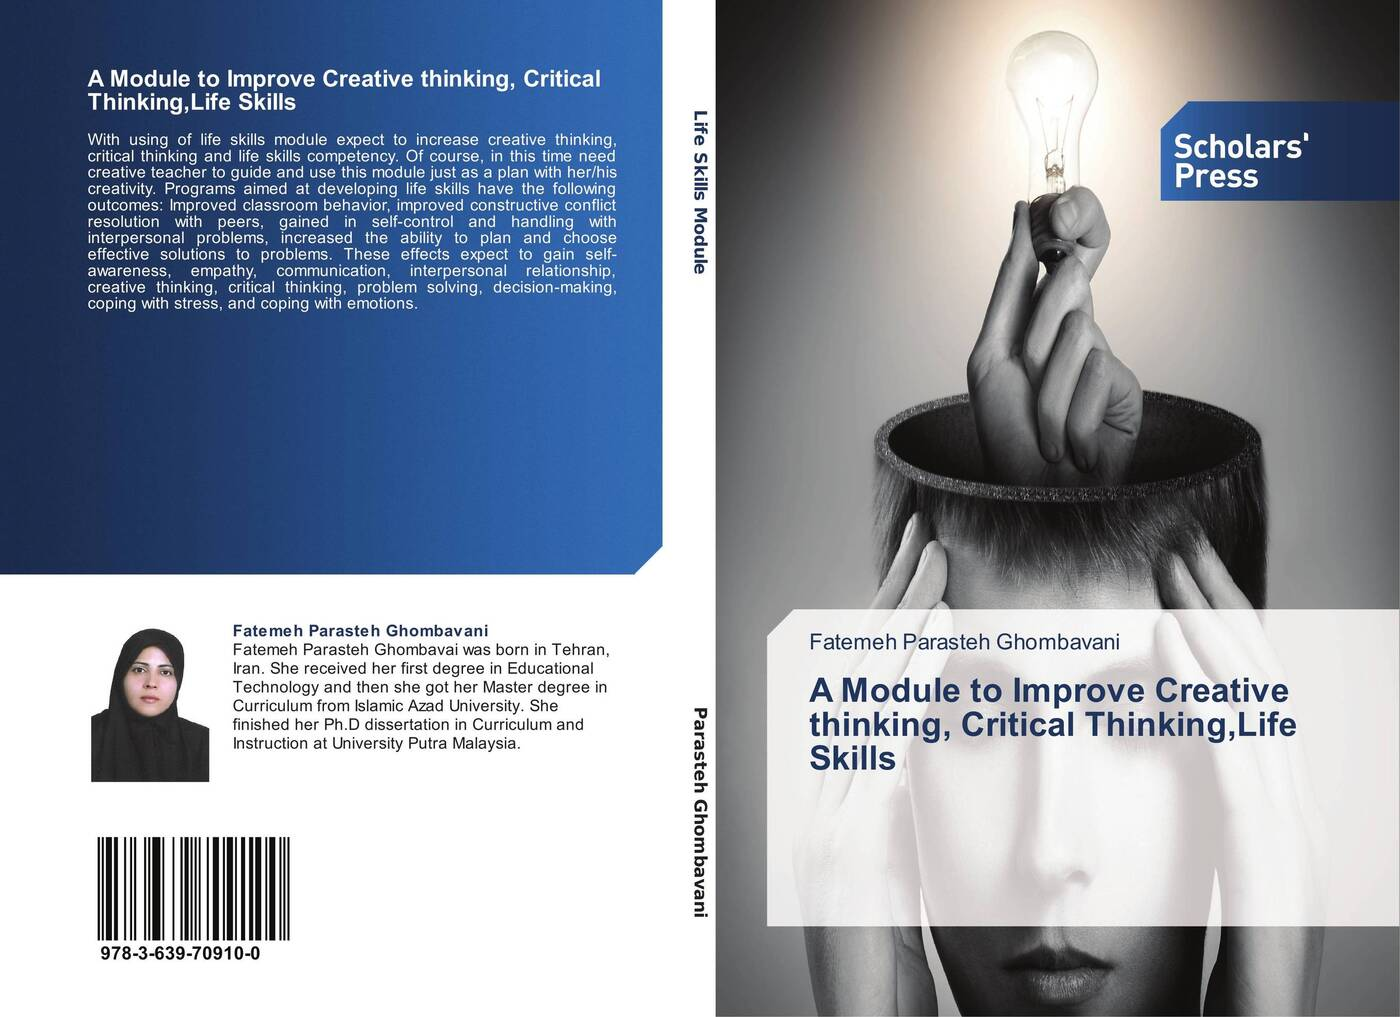 Fatemeh Parasteh Ghombavani A Module to Improve Creative thinking, Critical Thinking,Life Skills richard l epstein the pocket guide to critical thinking fifth edition